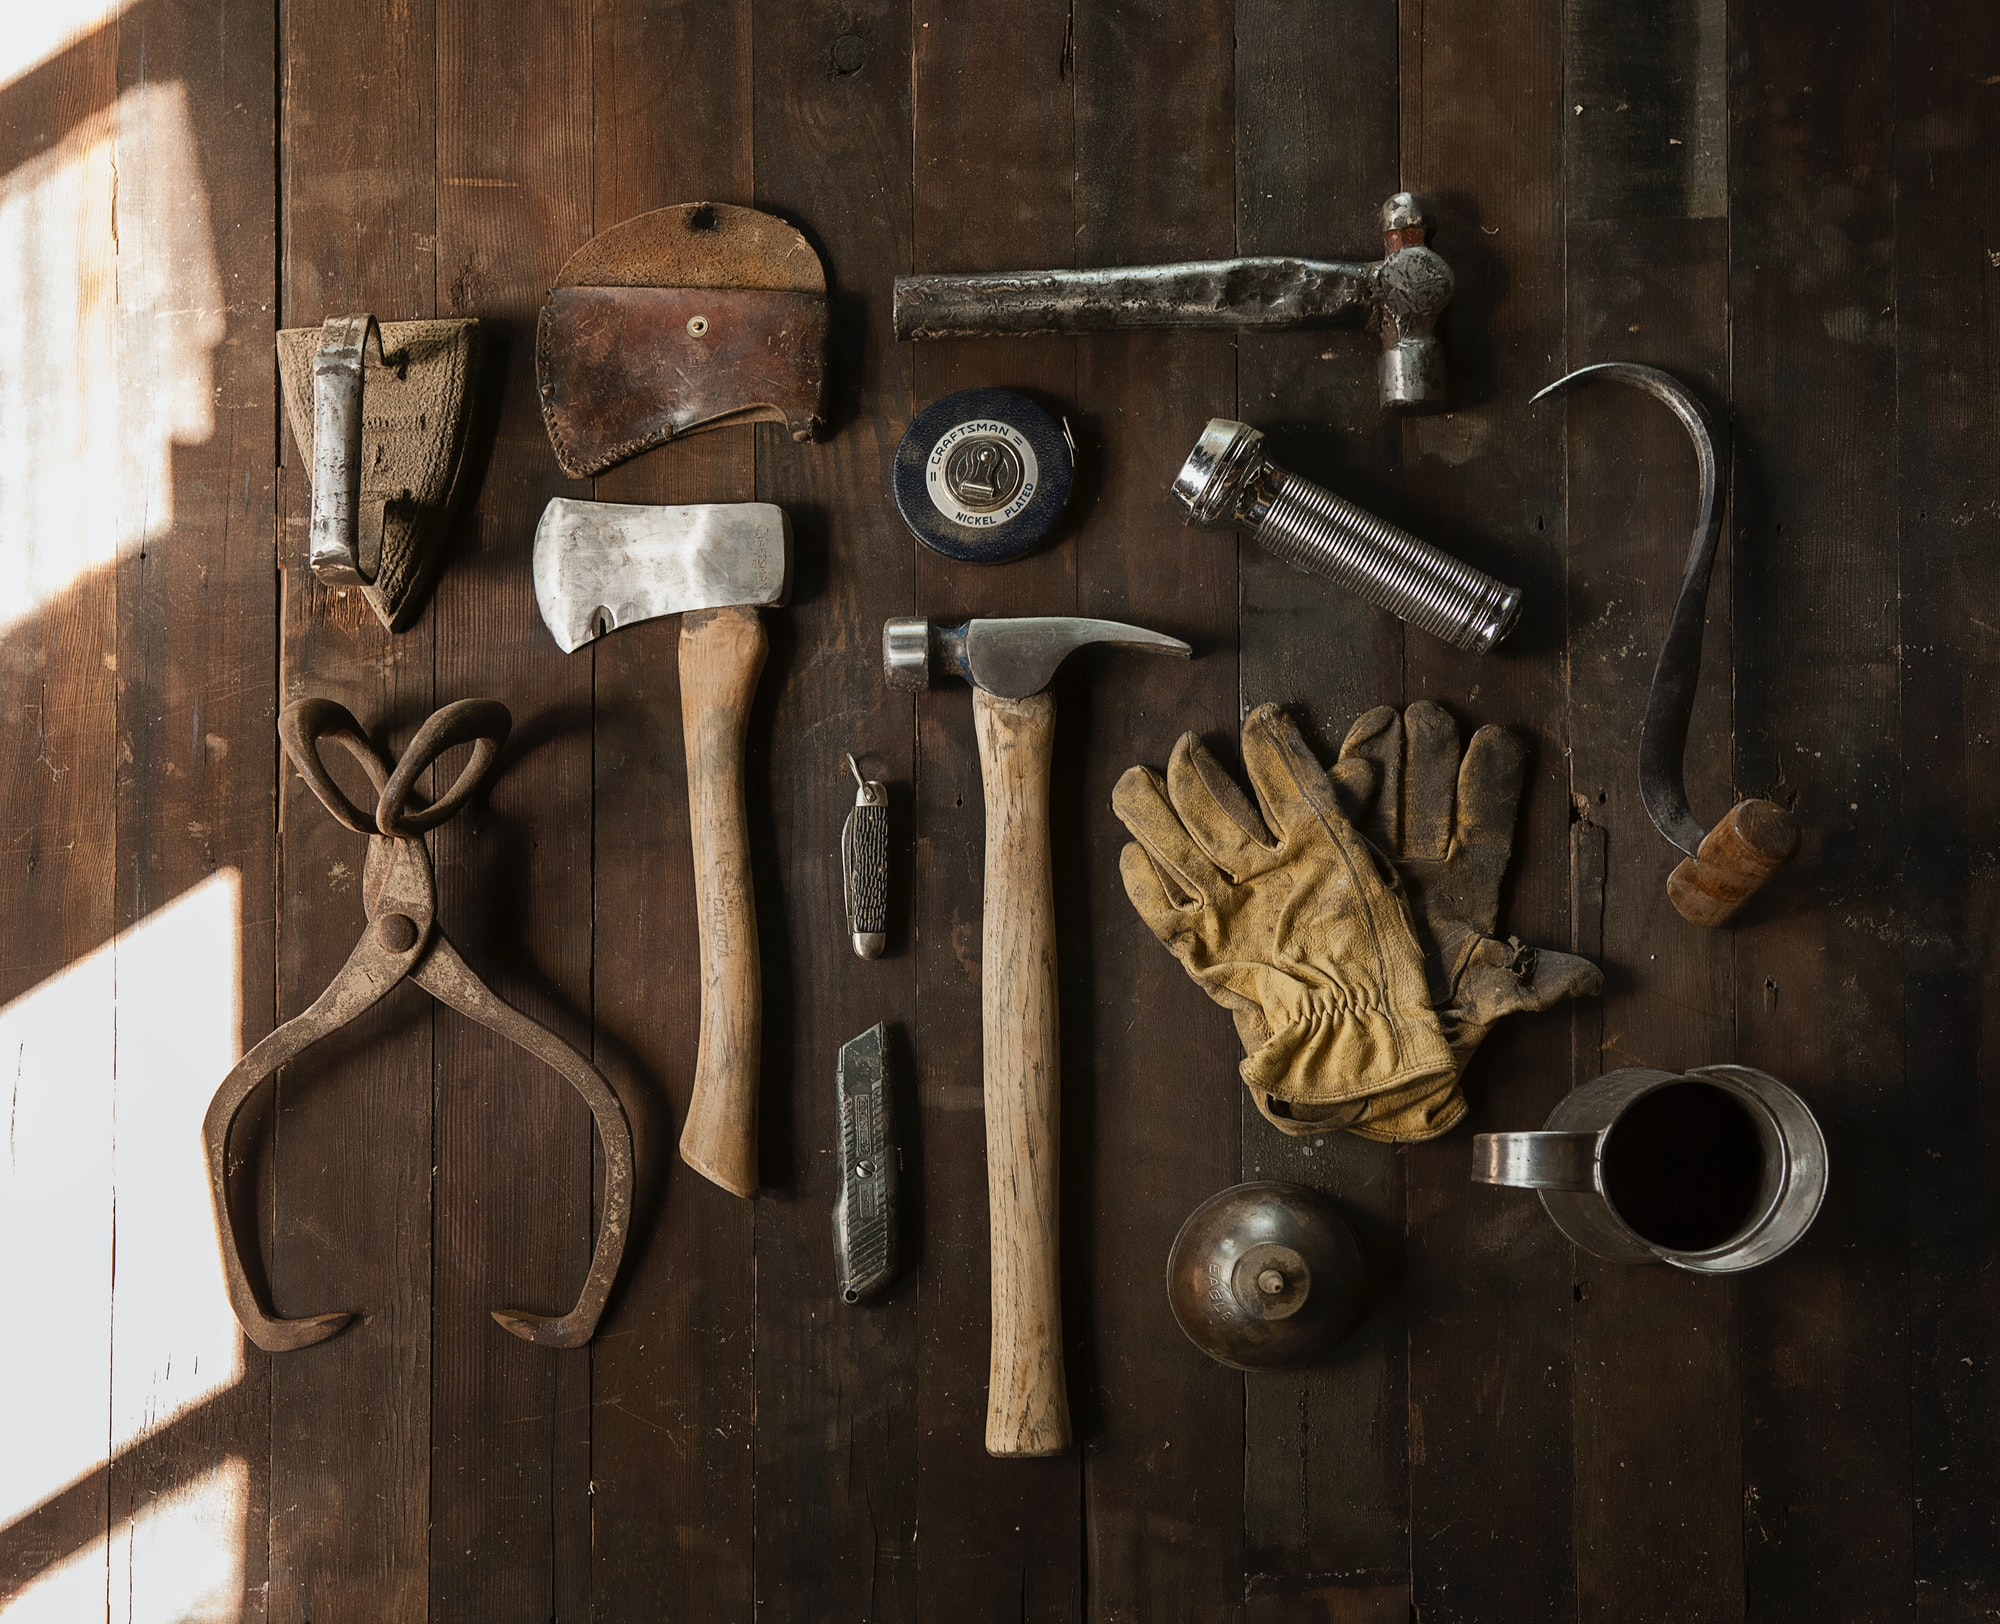 Top tools to improve your product life cycle